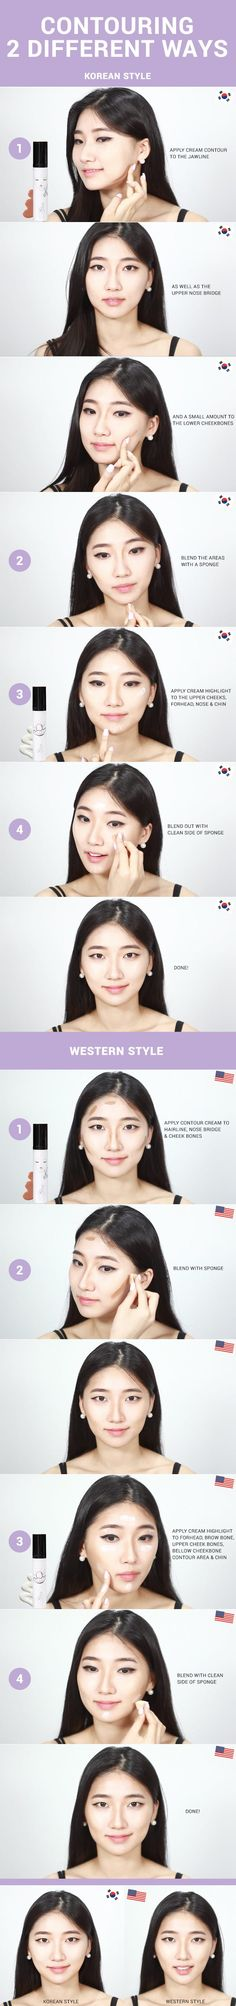 13 Asian Beauty Cheat Sheets You'll Want To Bookmark